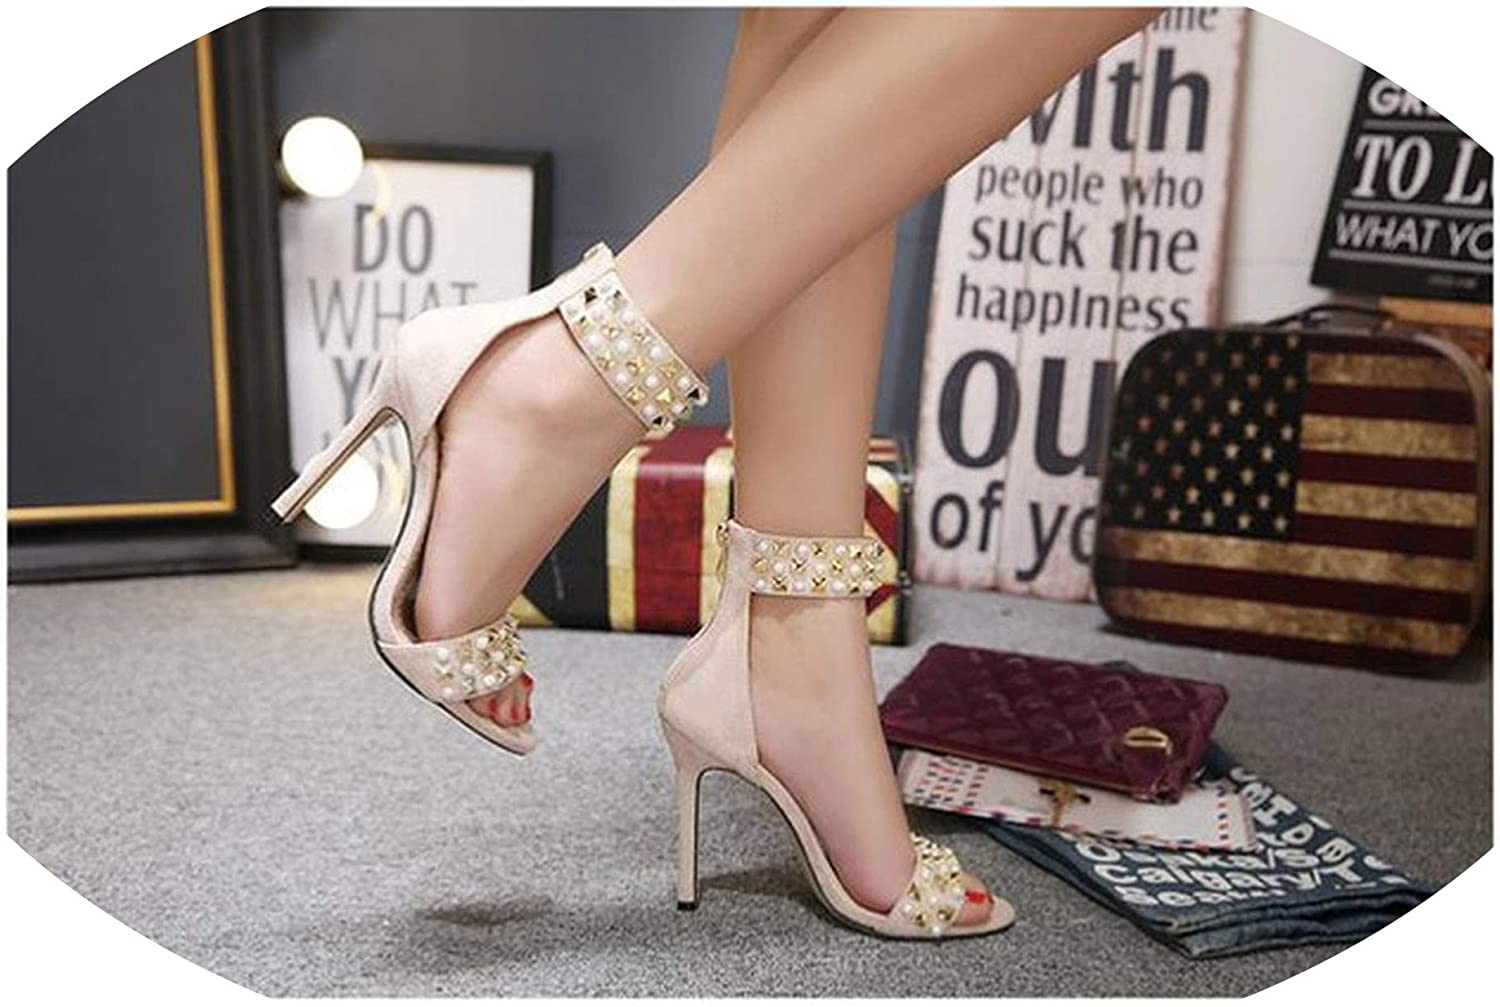 Sheep Sandalia Feminina Suede Leather Ankle Strap Ladies Open Toe Pumps Black High Heel Sandals Women Wedding shoes